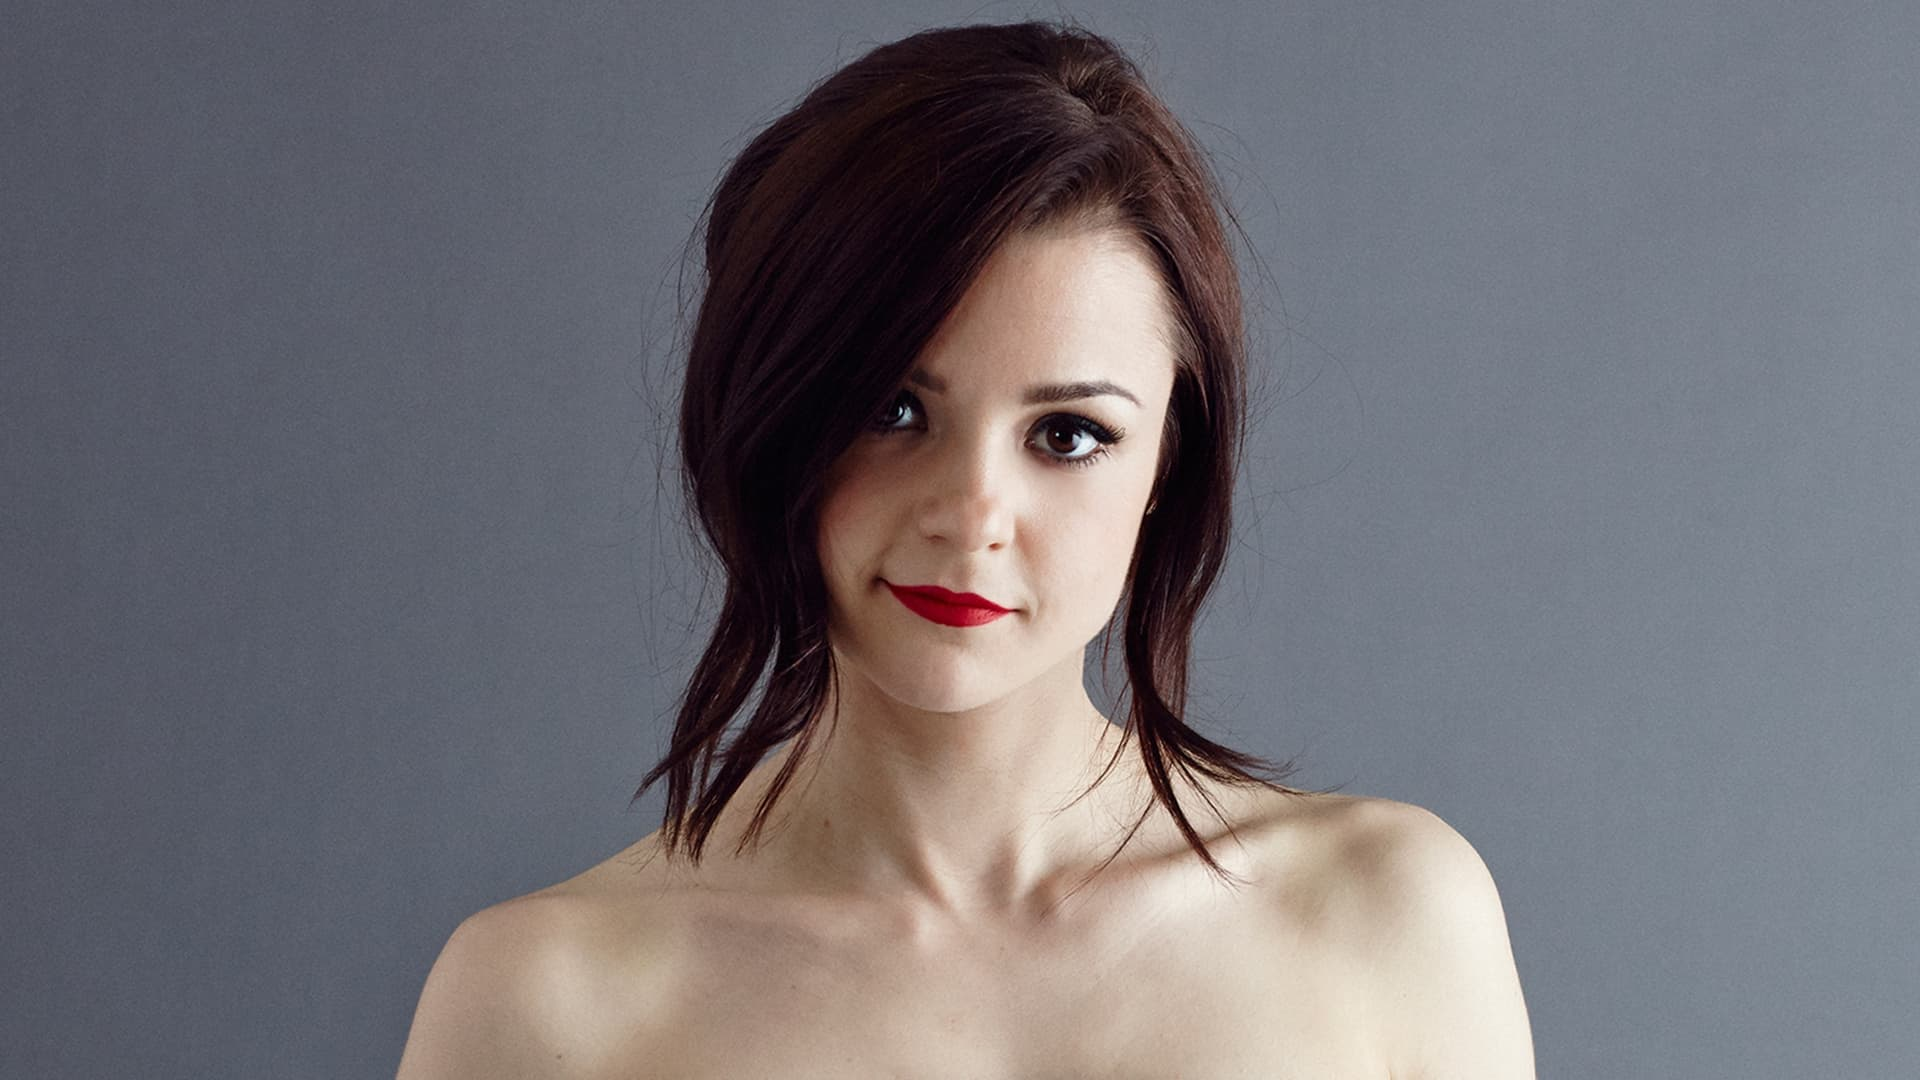 Kathryn Prescott Full HD image